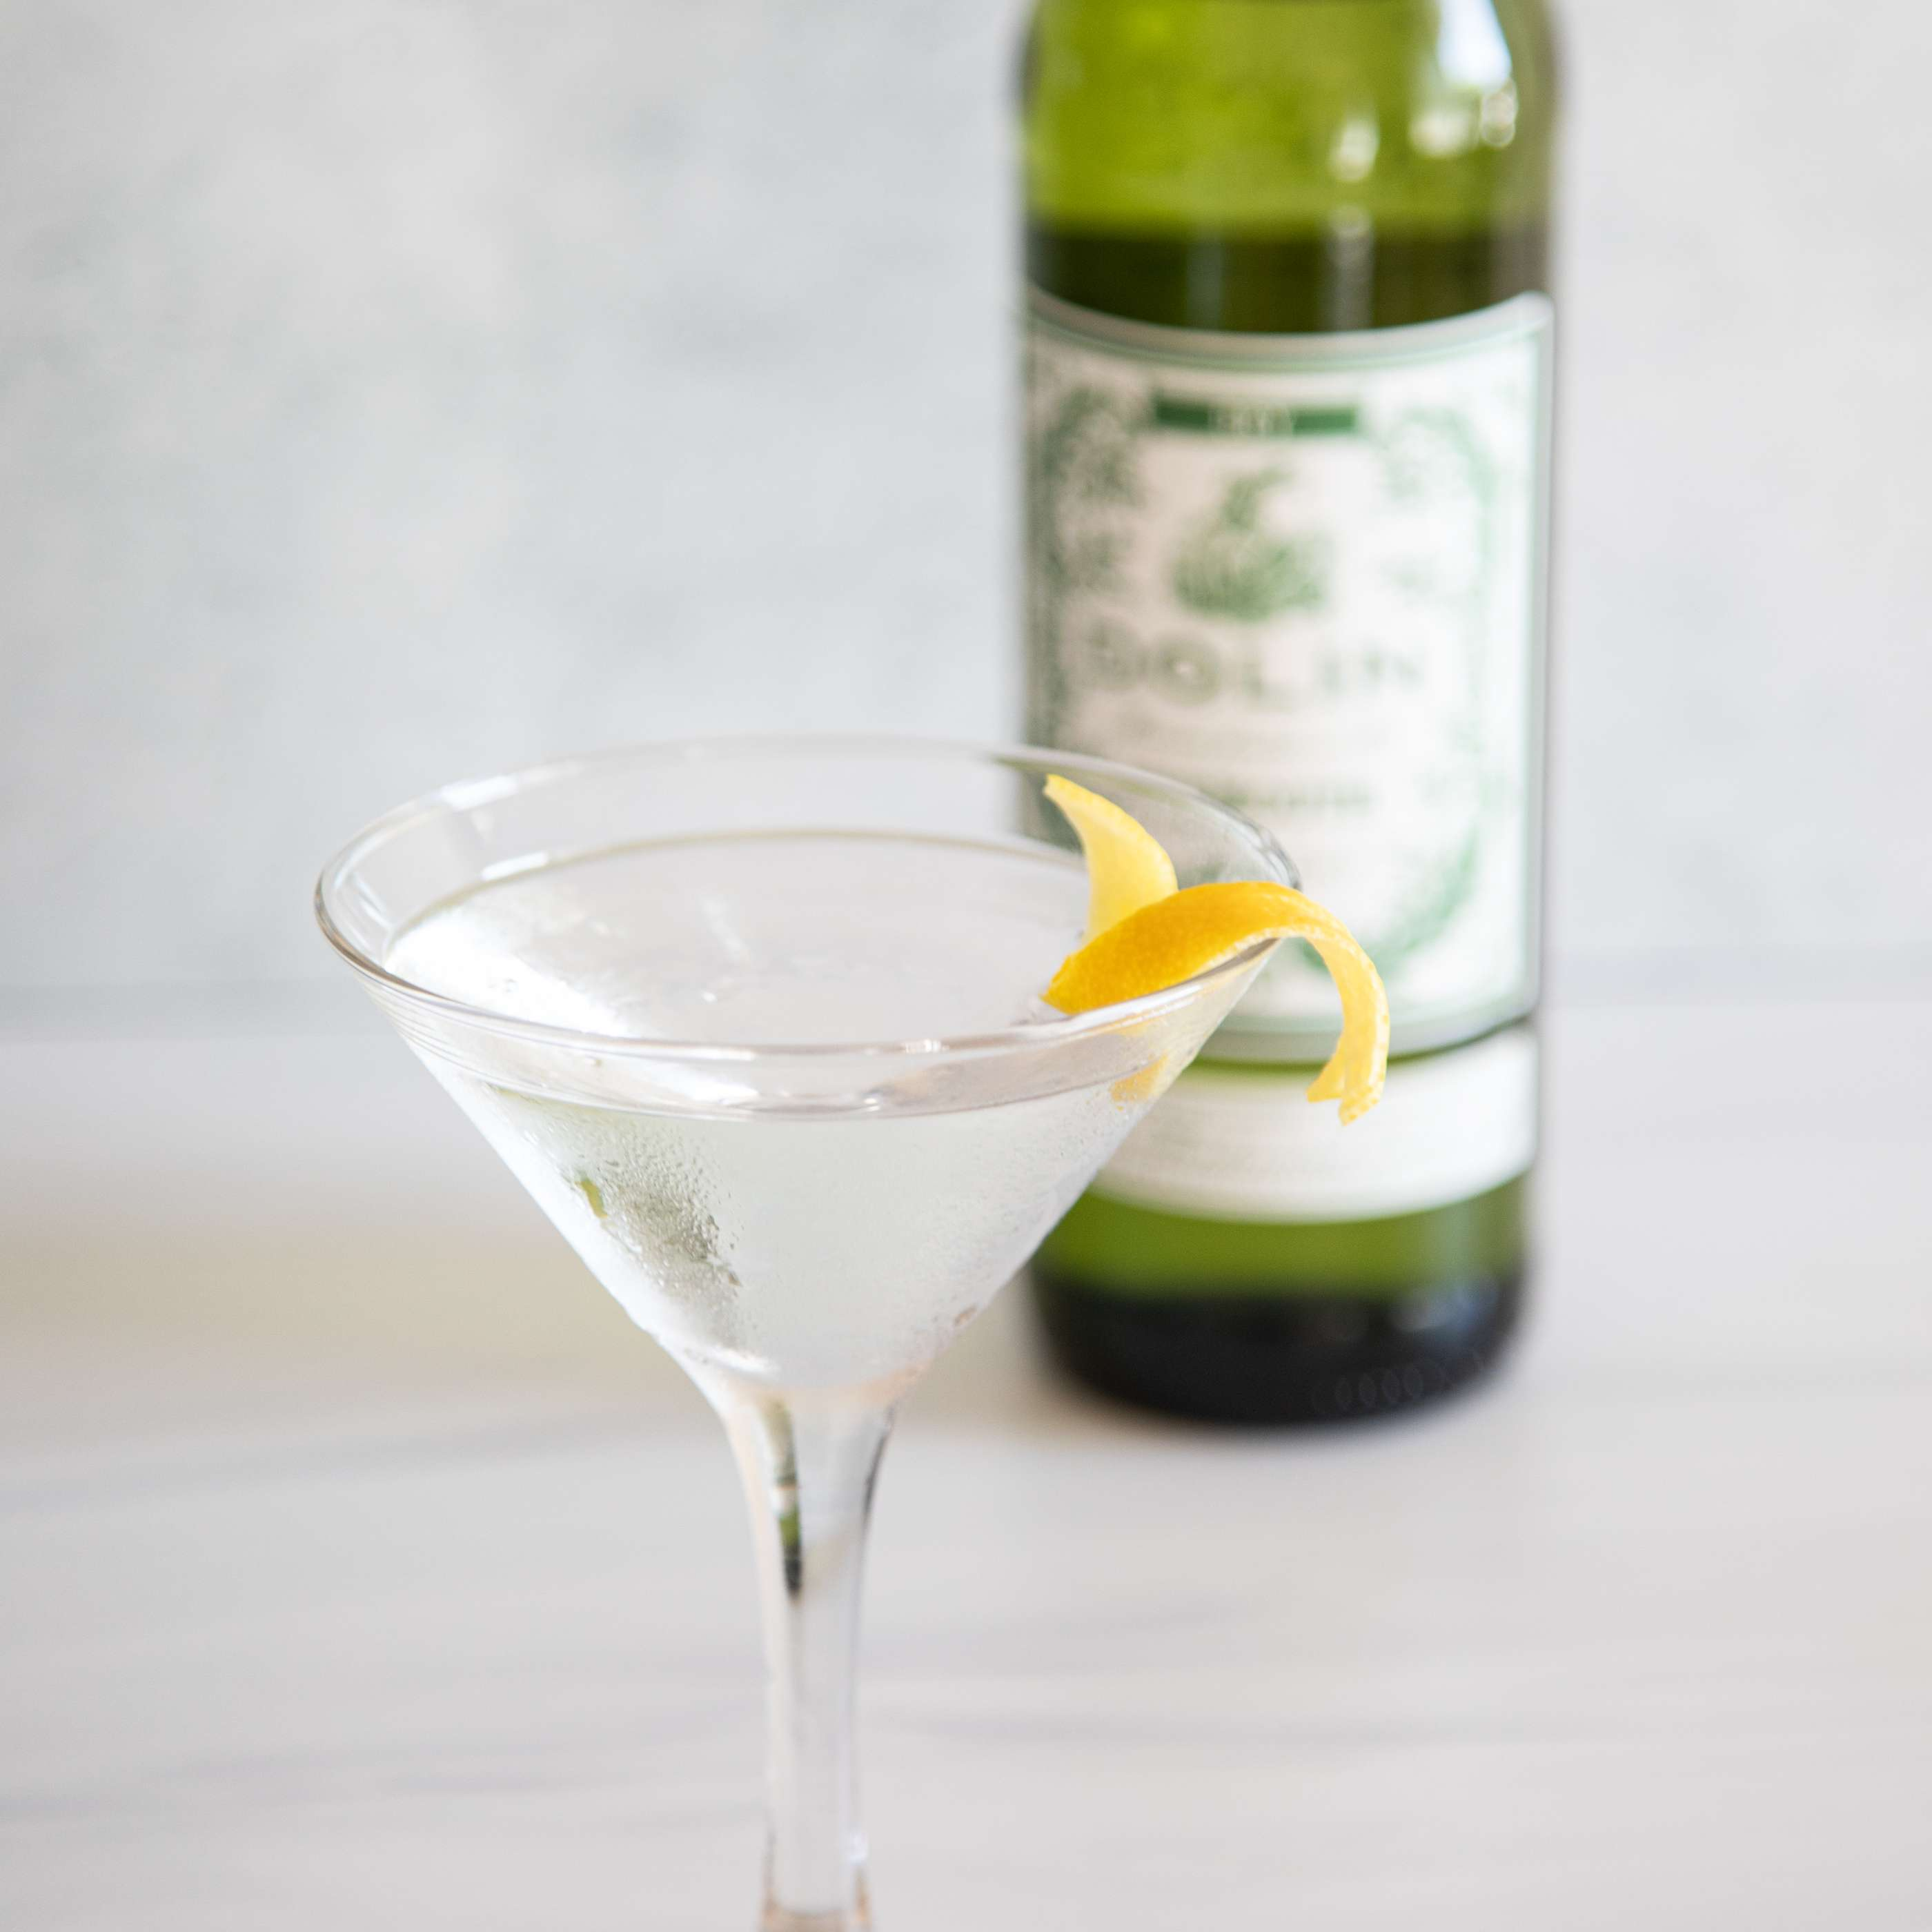 50/50 Vodka Martini with a lemon peel garnish and a bottle in the background.